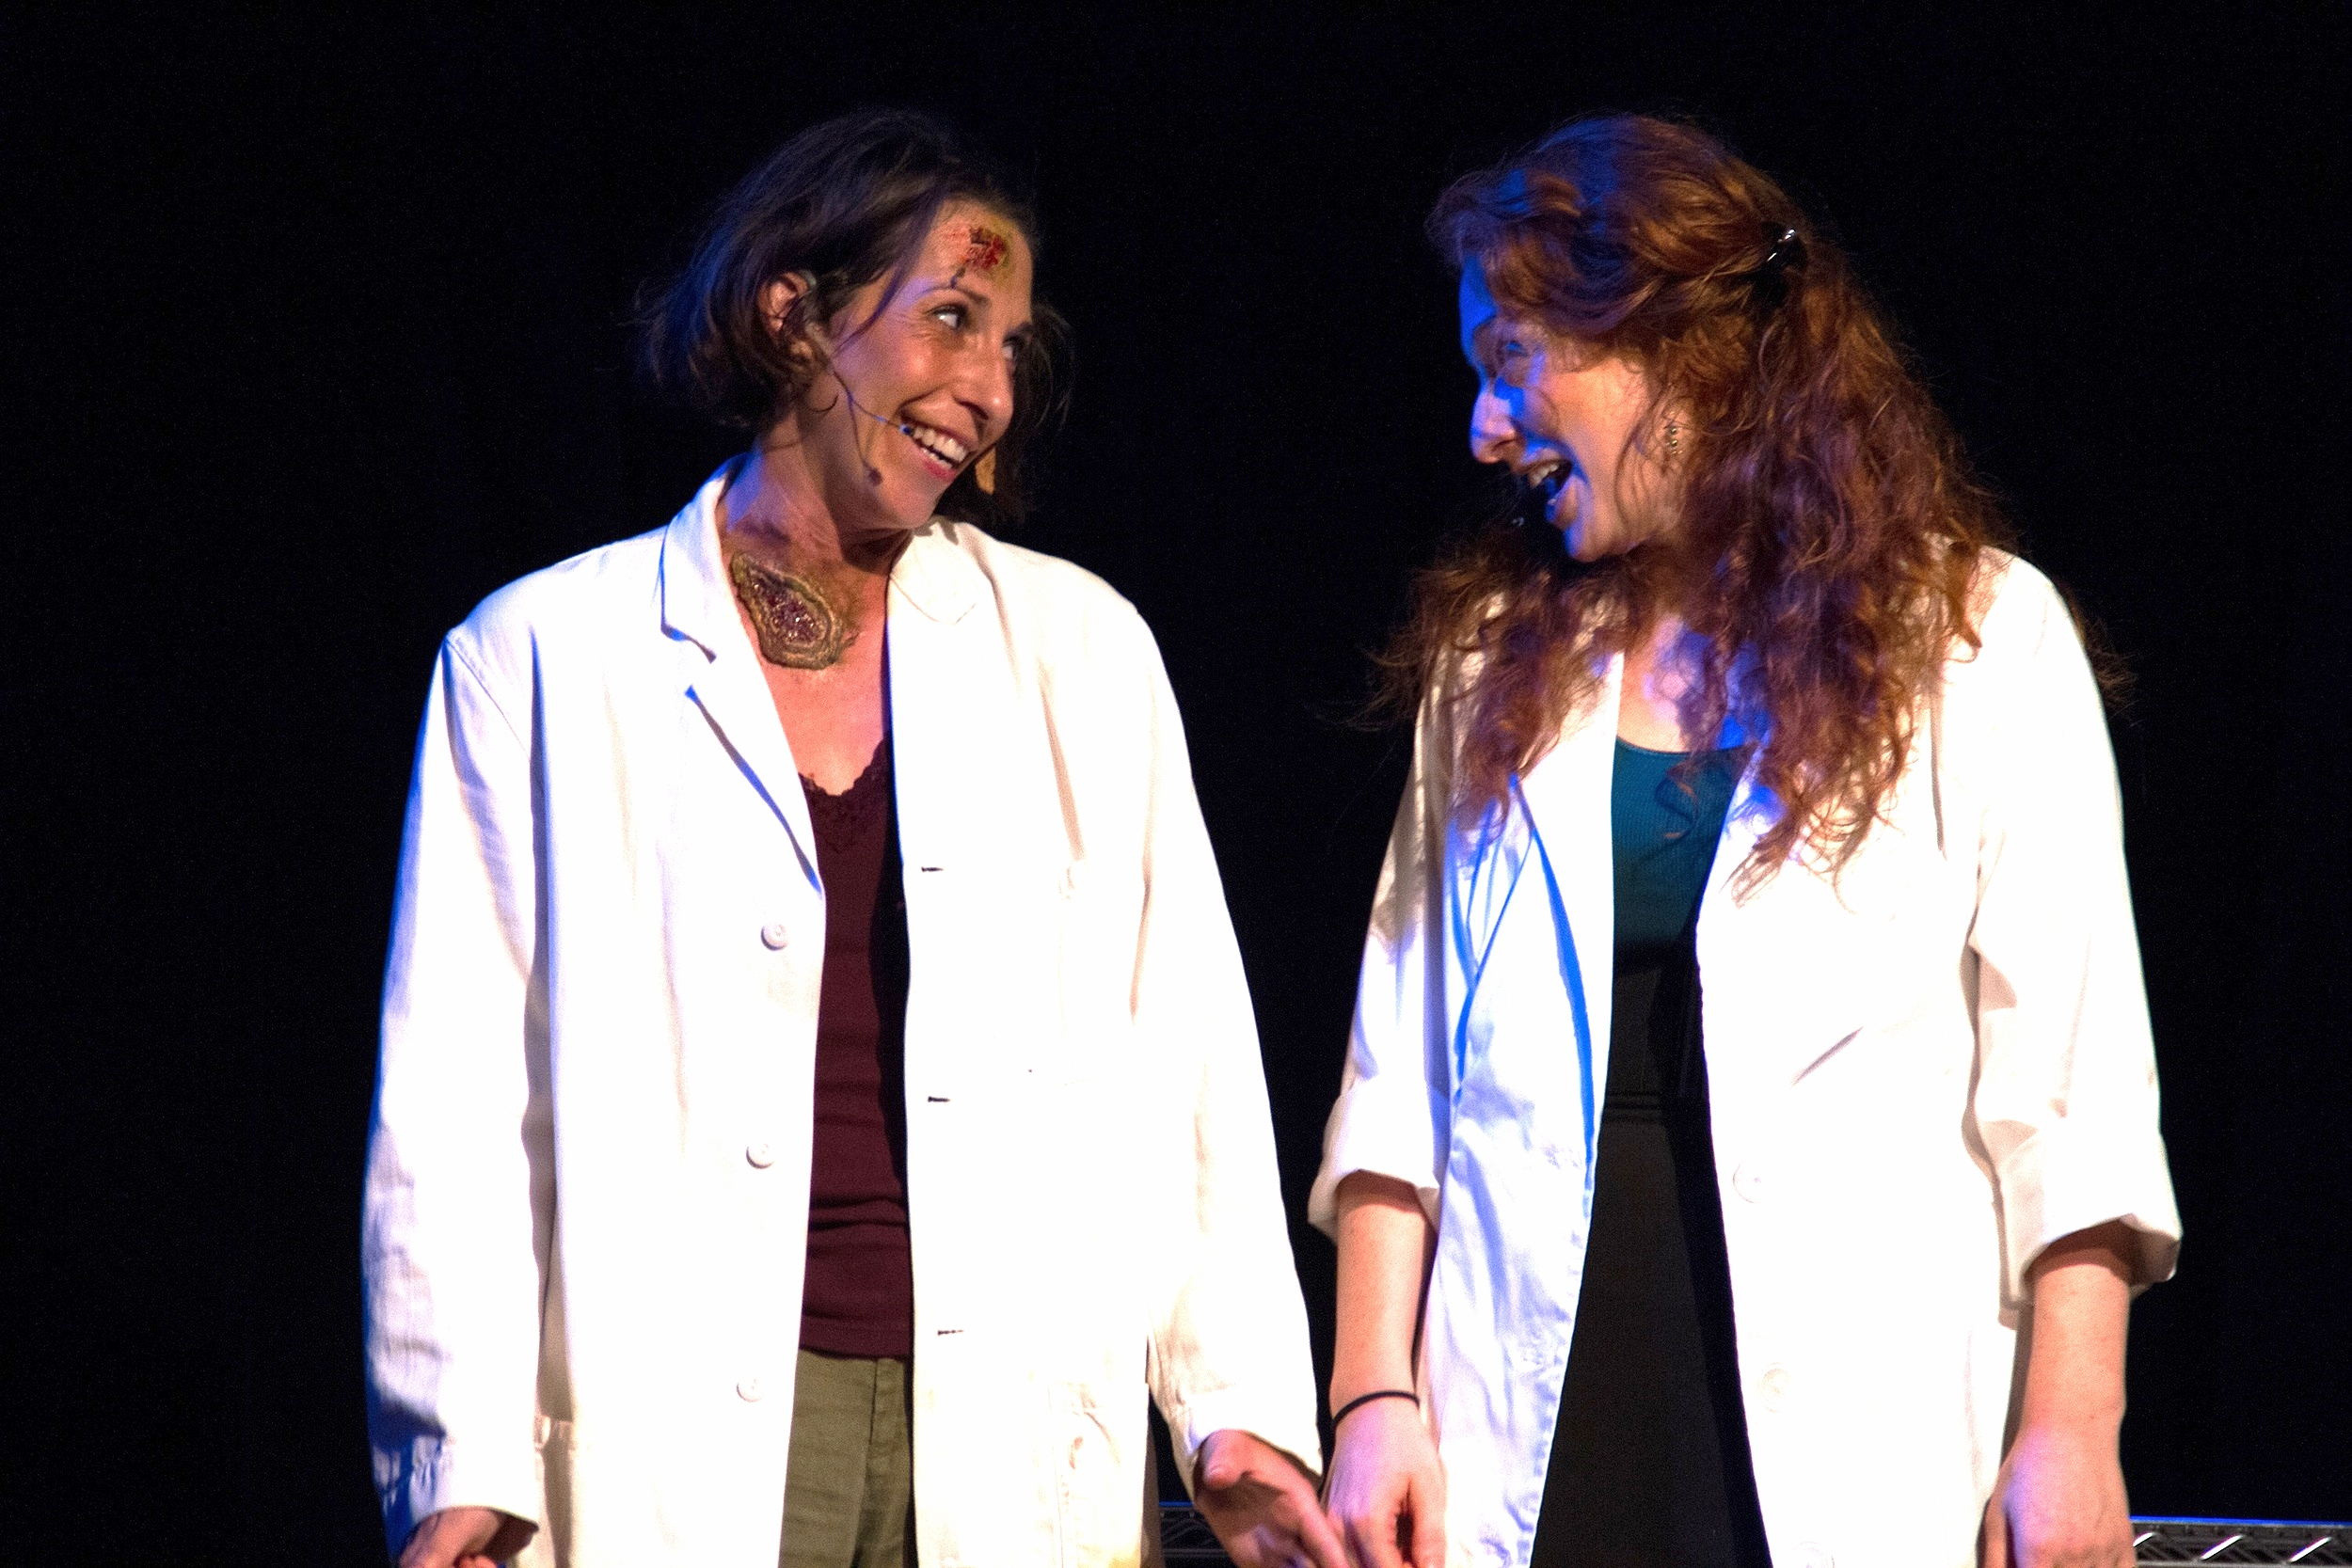 Piper Goodeve & Megan Sass in THE MAD SCIENTIST'S GUIDE TO ROMANCE, ROBOTS AND SOUL-CRUSHING LONELINESS (FringeNYC 2015). Photo courtesy Crystal Arnette.